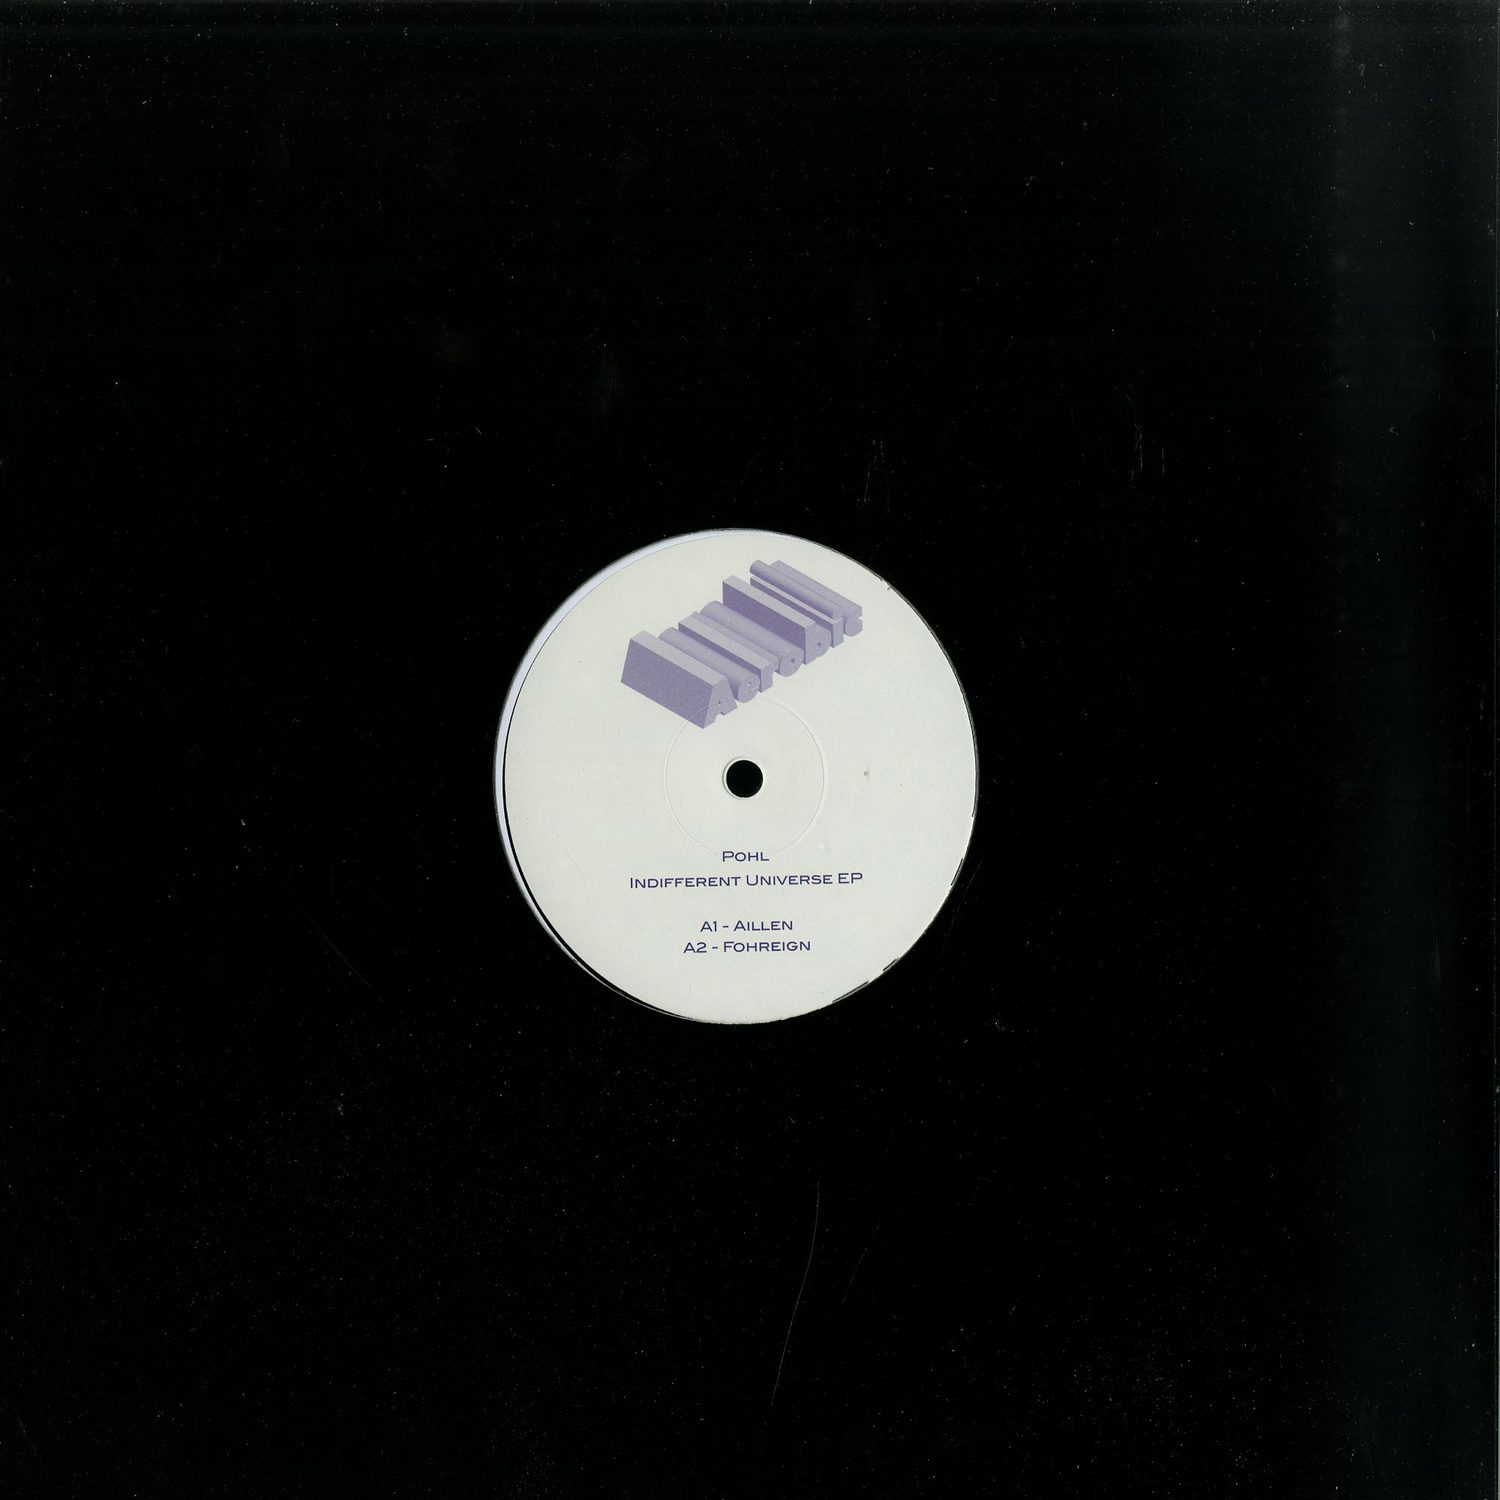 Pohl - INDIFFERENT UNIVERSE EP